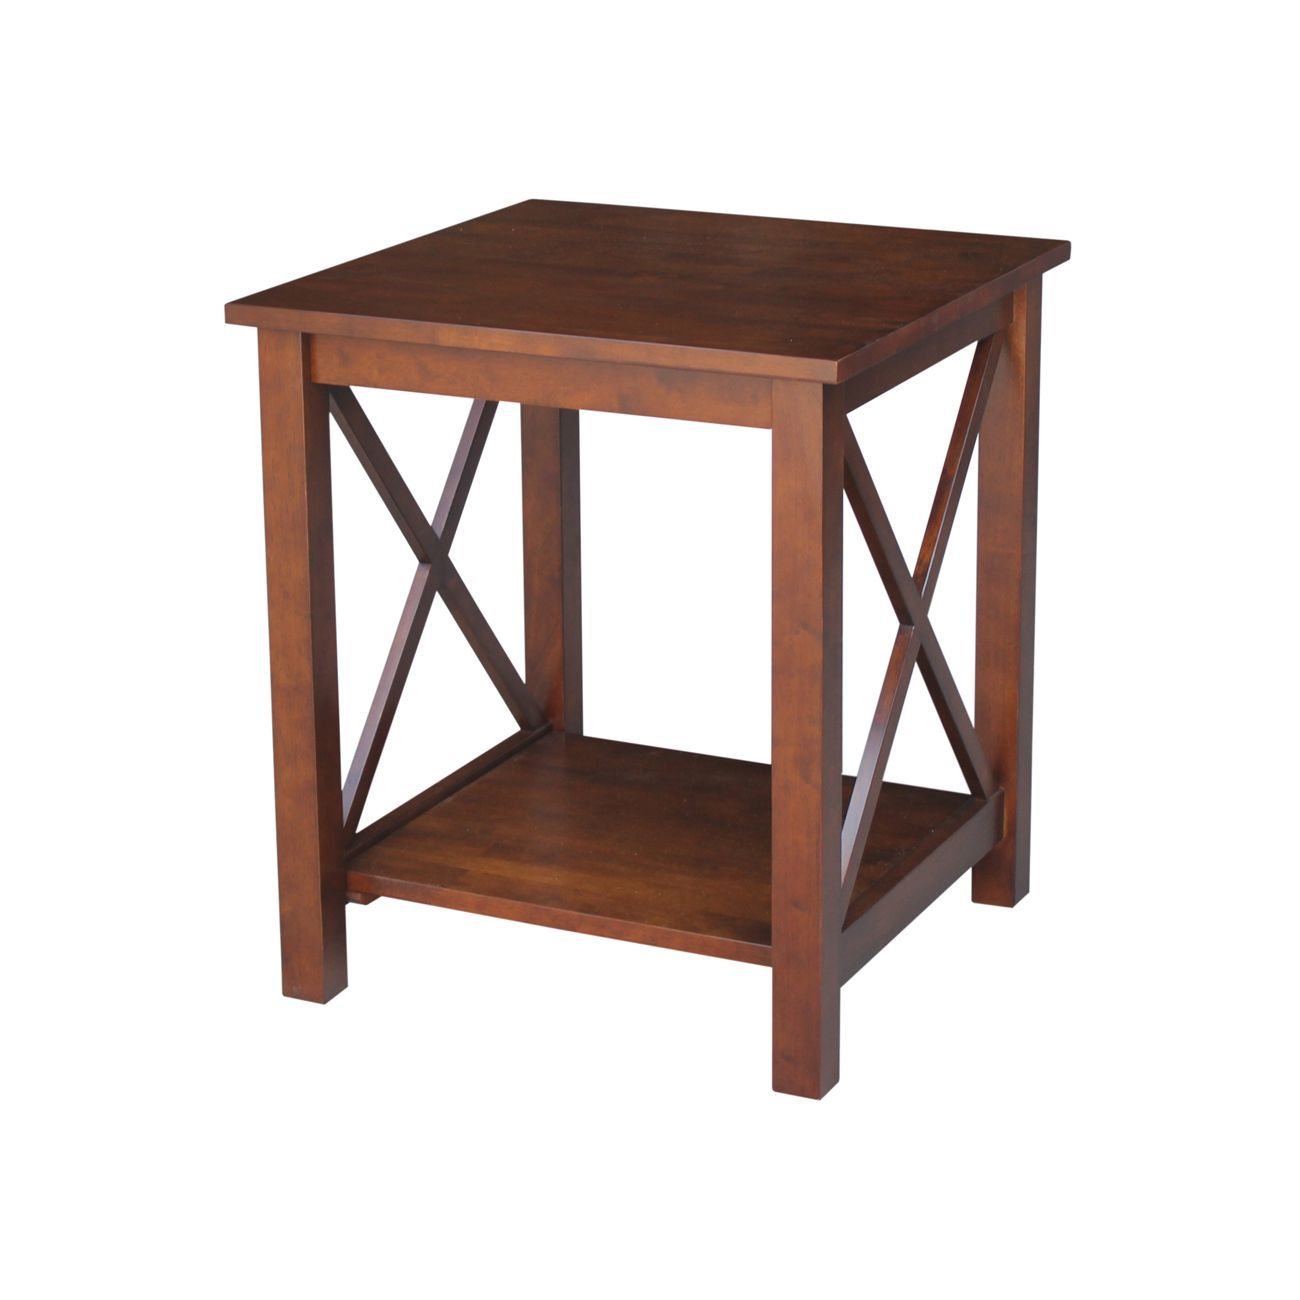 Online Shopping Bedding Furniture Electronics Jewelry Clothing More End Tables Wood End Tables Espresso End Table